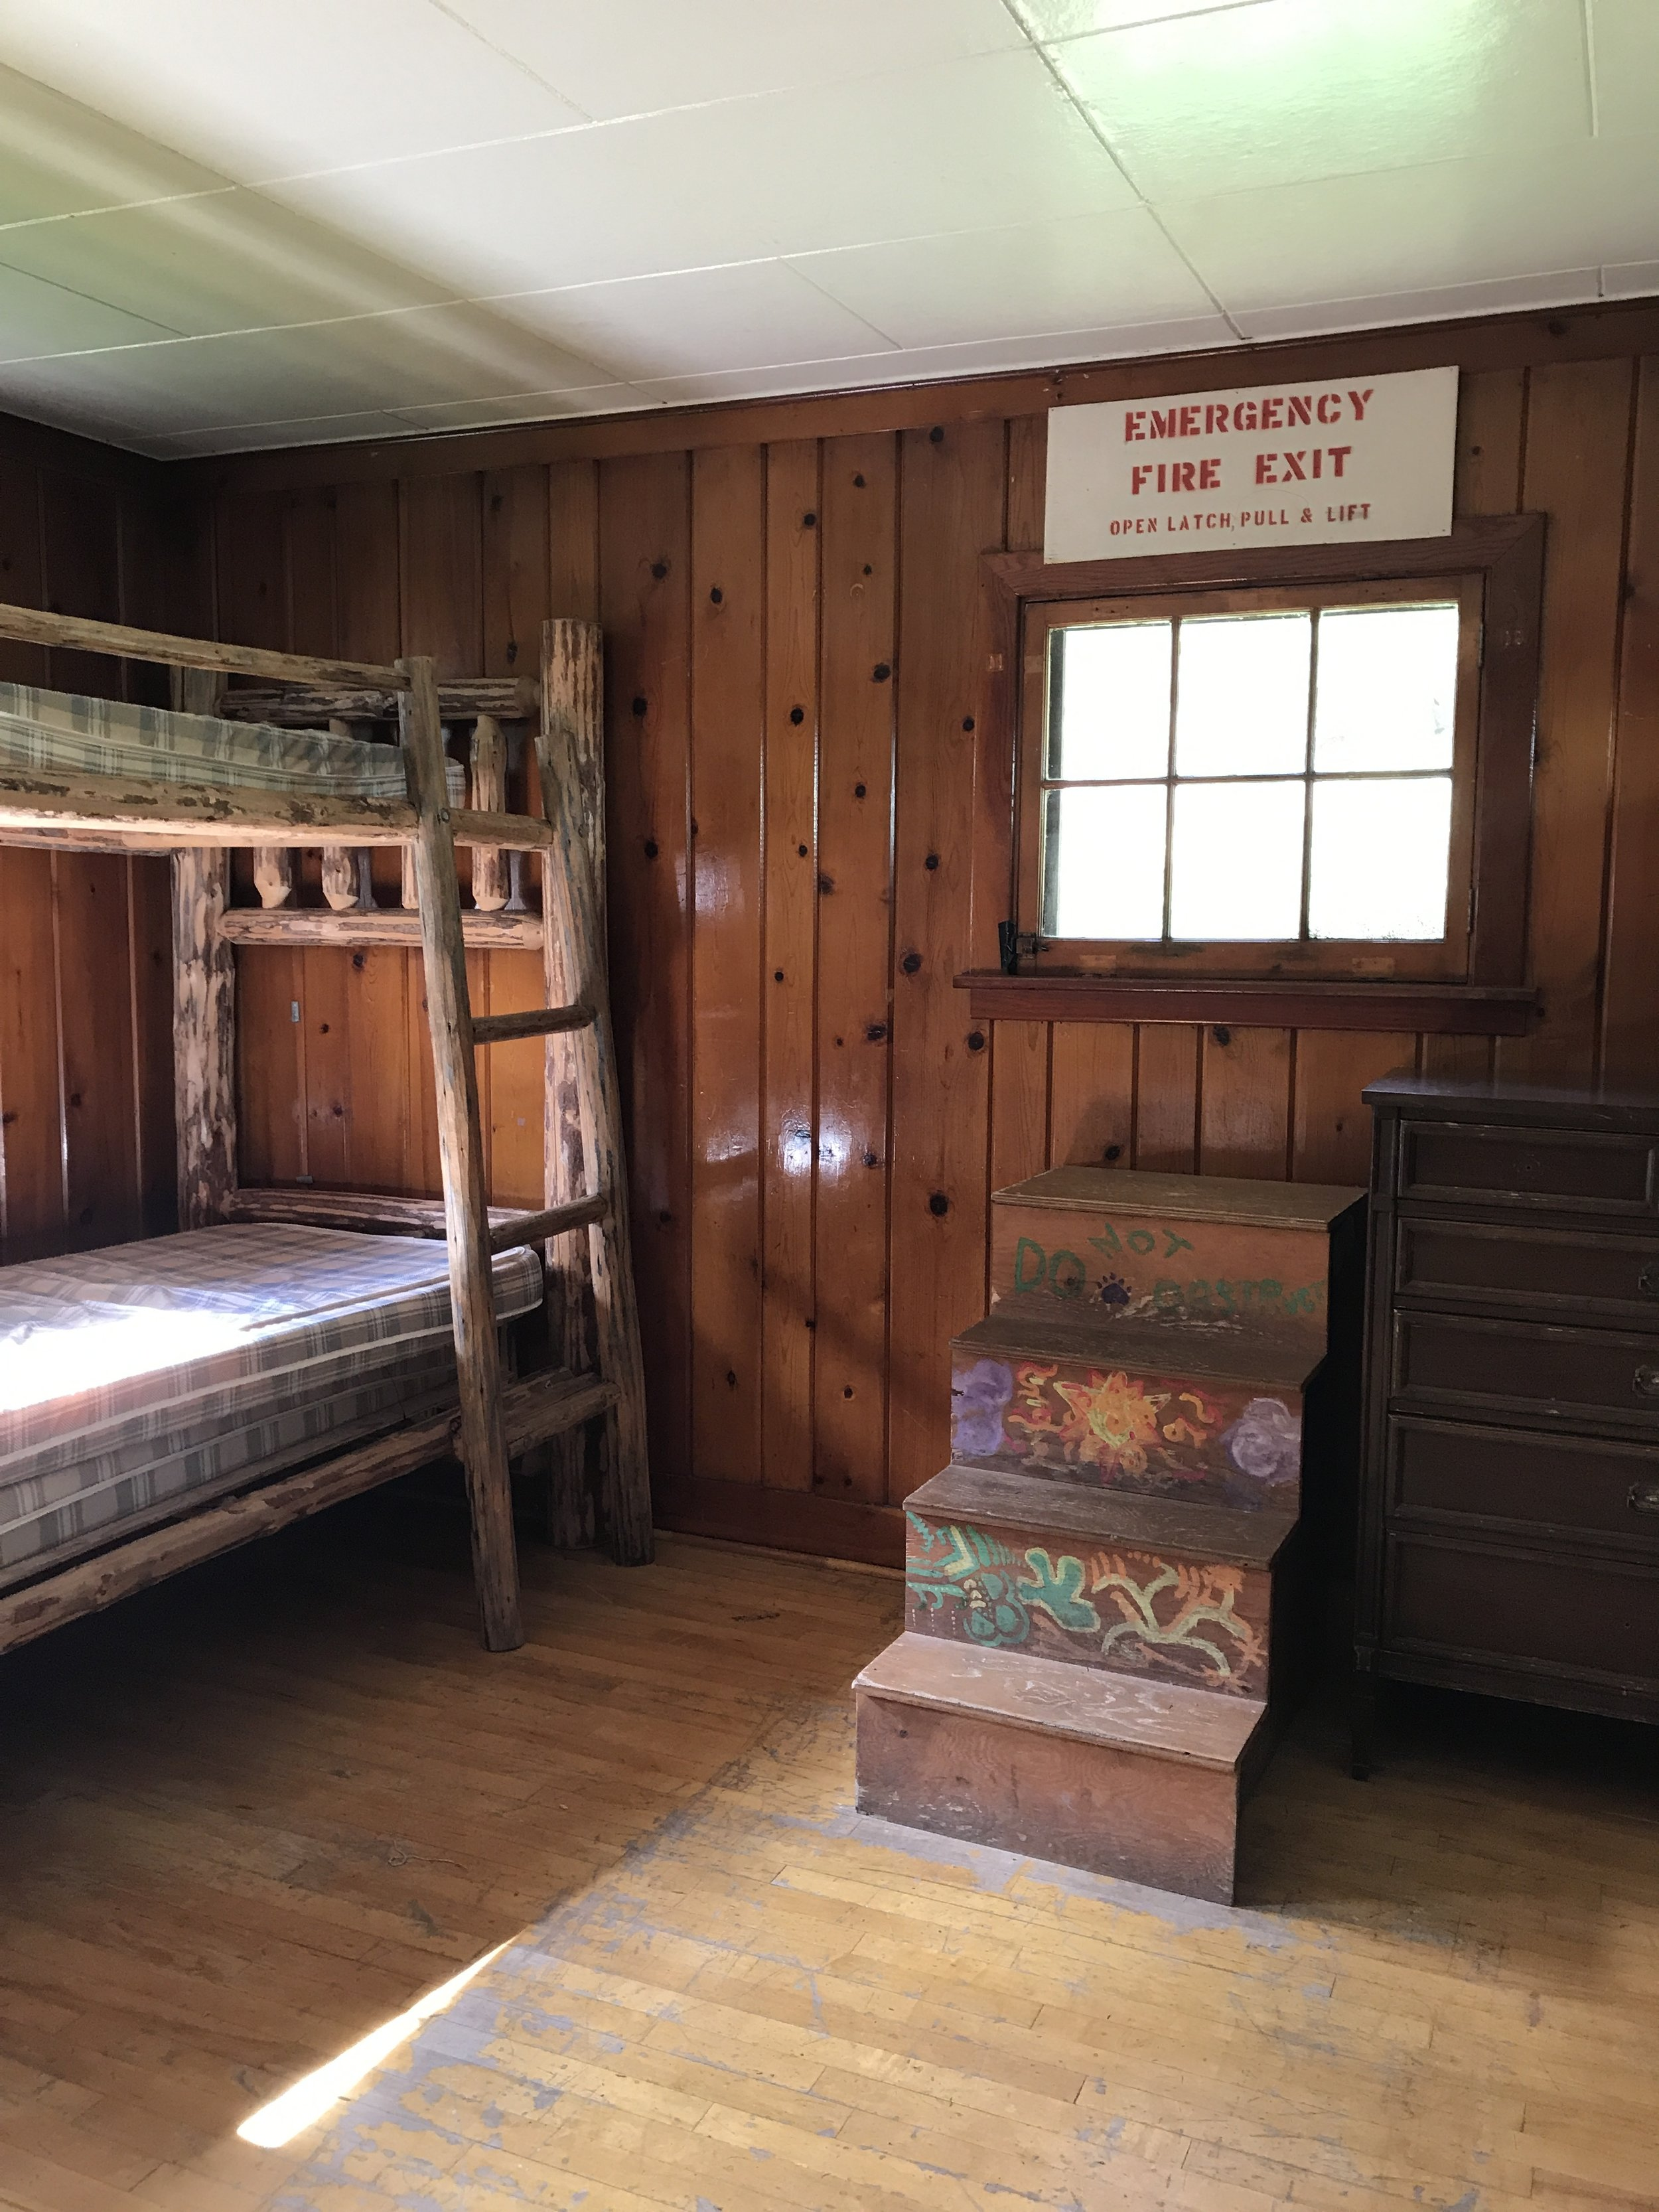 Inside one of the Big Creek bunkhouses.